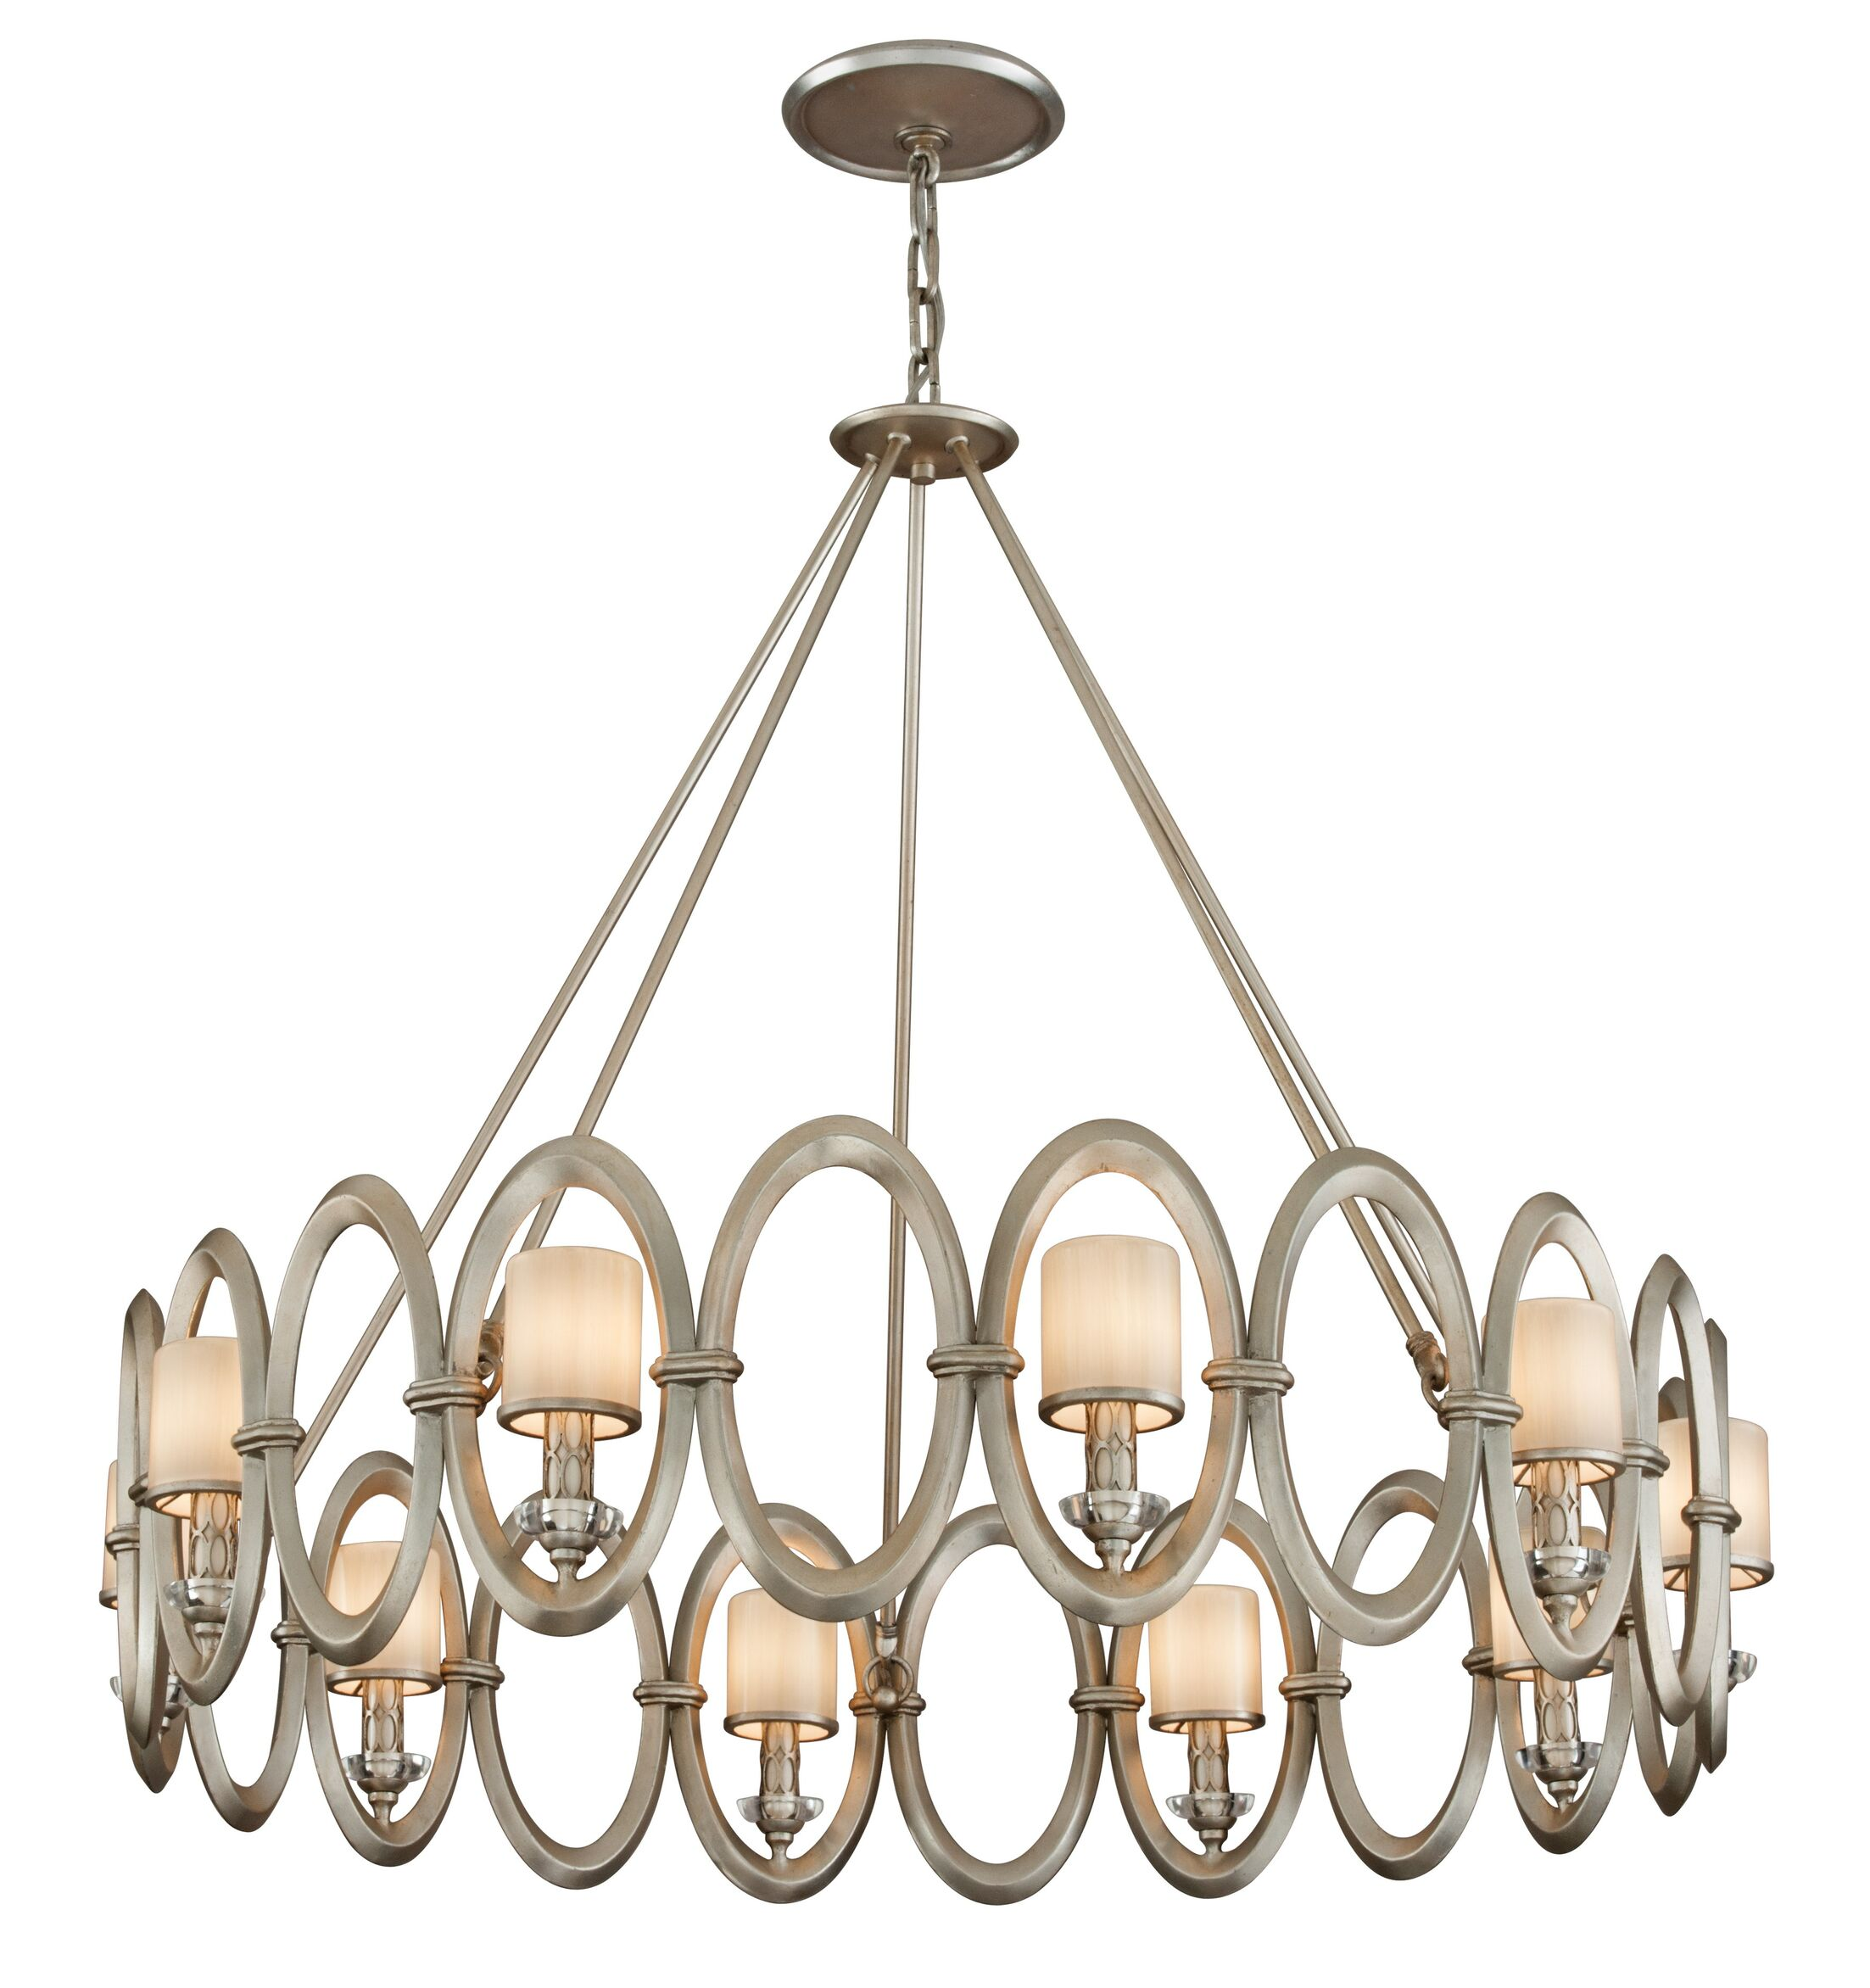 Embrace Wagon Wheel Chandelier Size: 33.75'' H x 39.5'' W x 39.5'' D